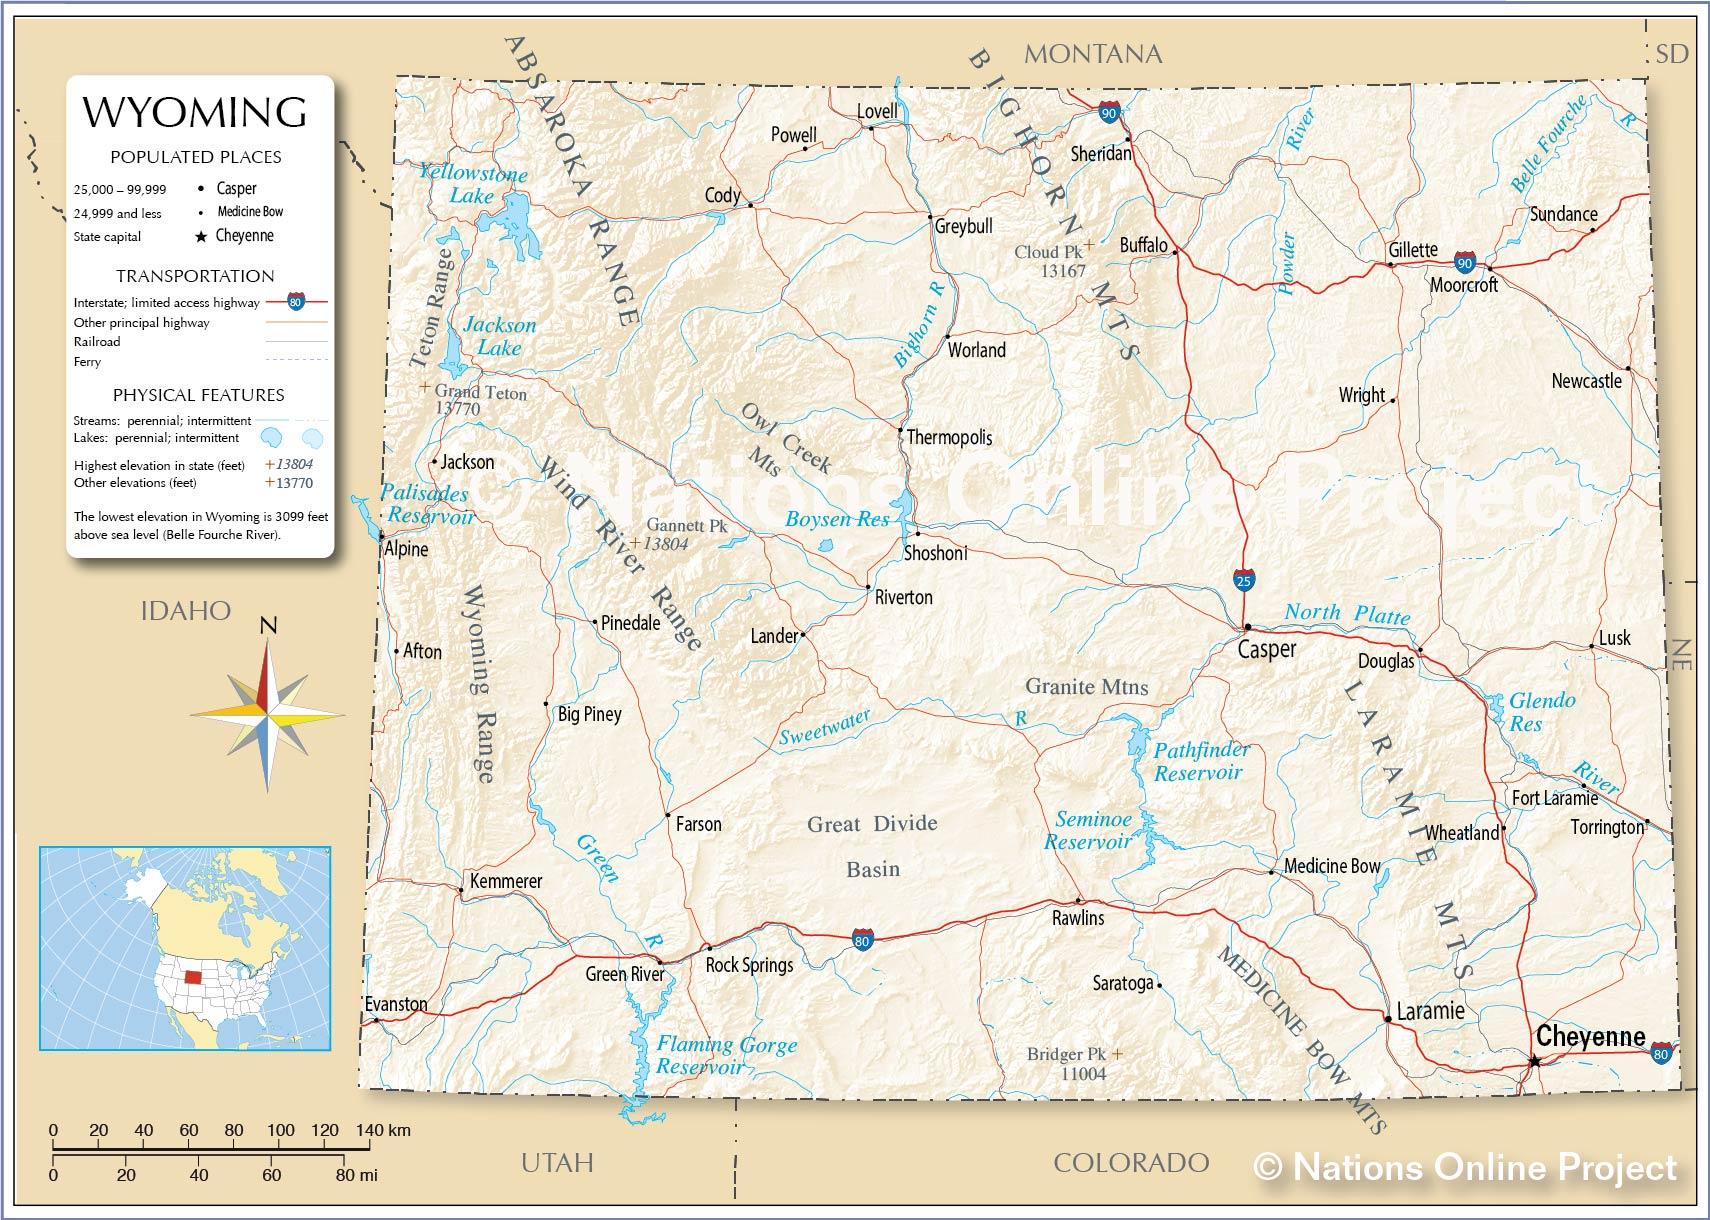 Reference Map Of Wyoming USA Nations Online Project - Map of wyoming cities